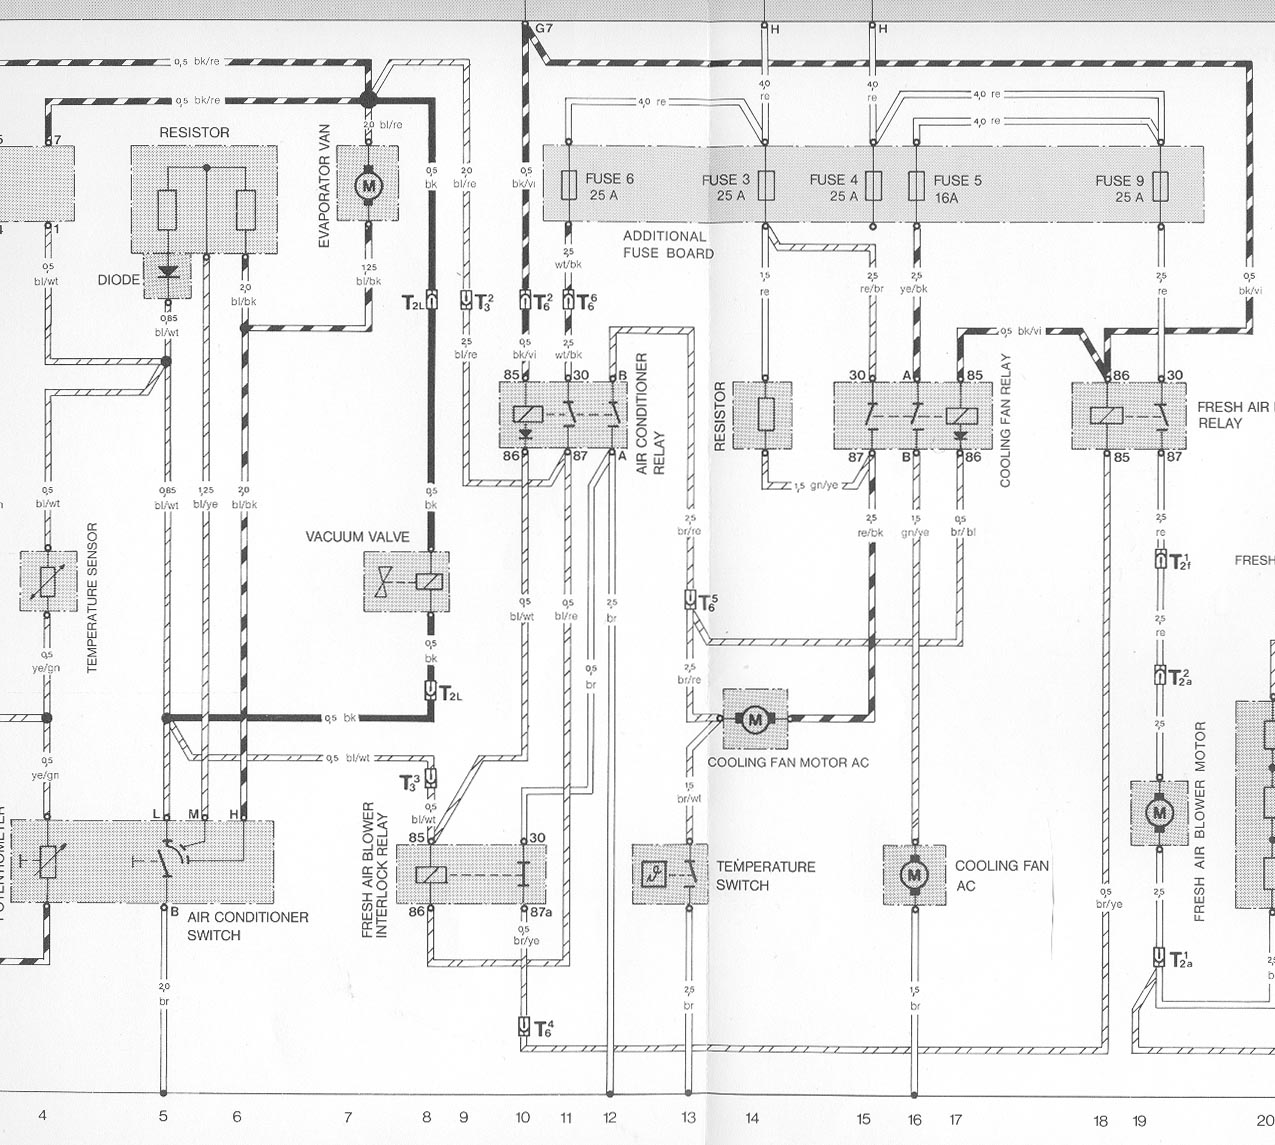 early_cooling_fan_with_ac cooling fan operation and troubleshooting Hayden Electric Fan Wiring Diagram at mr168.co